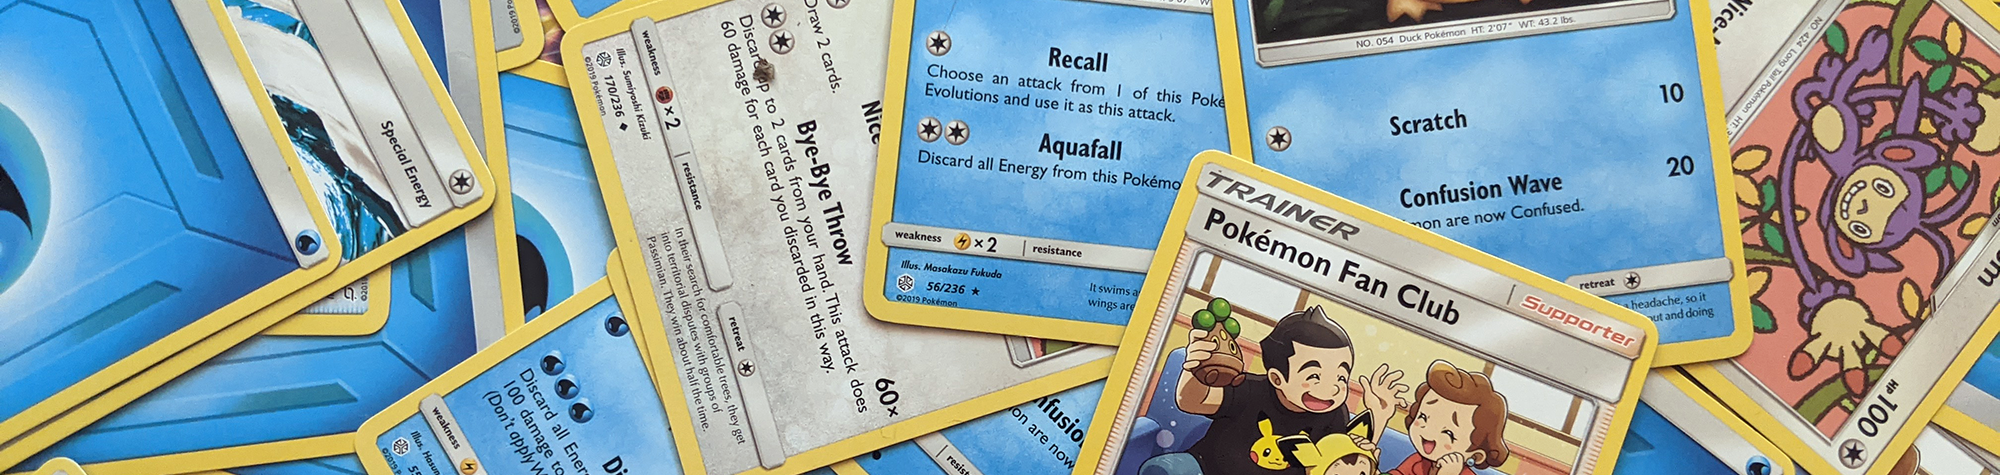 Getting Started with Pokémon TCG – What to Buy First